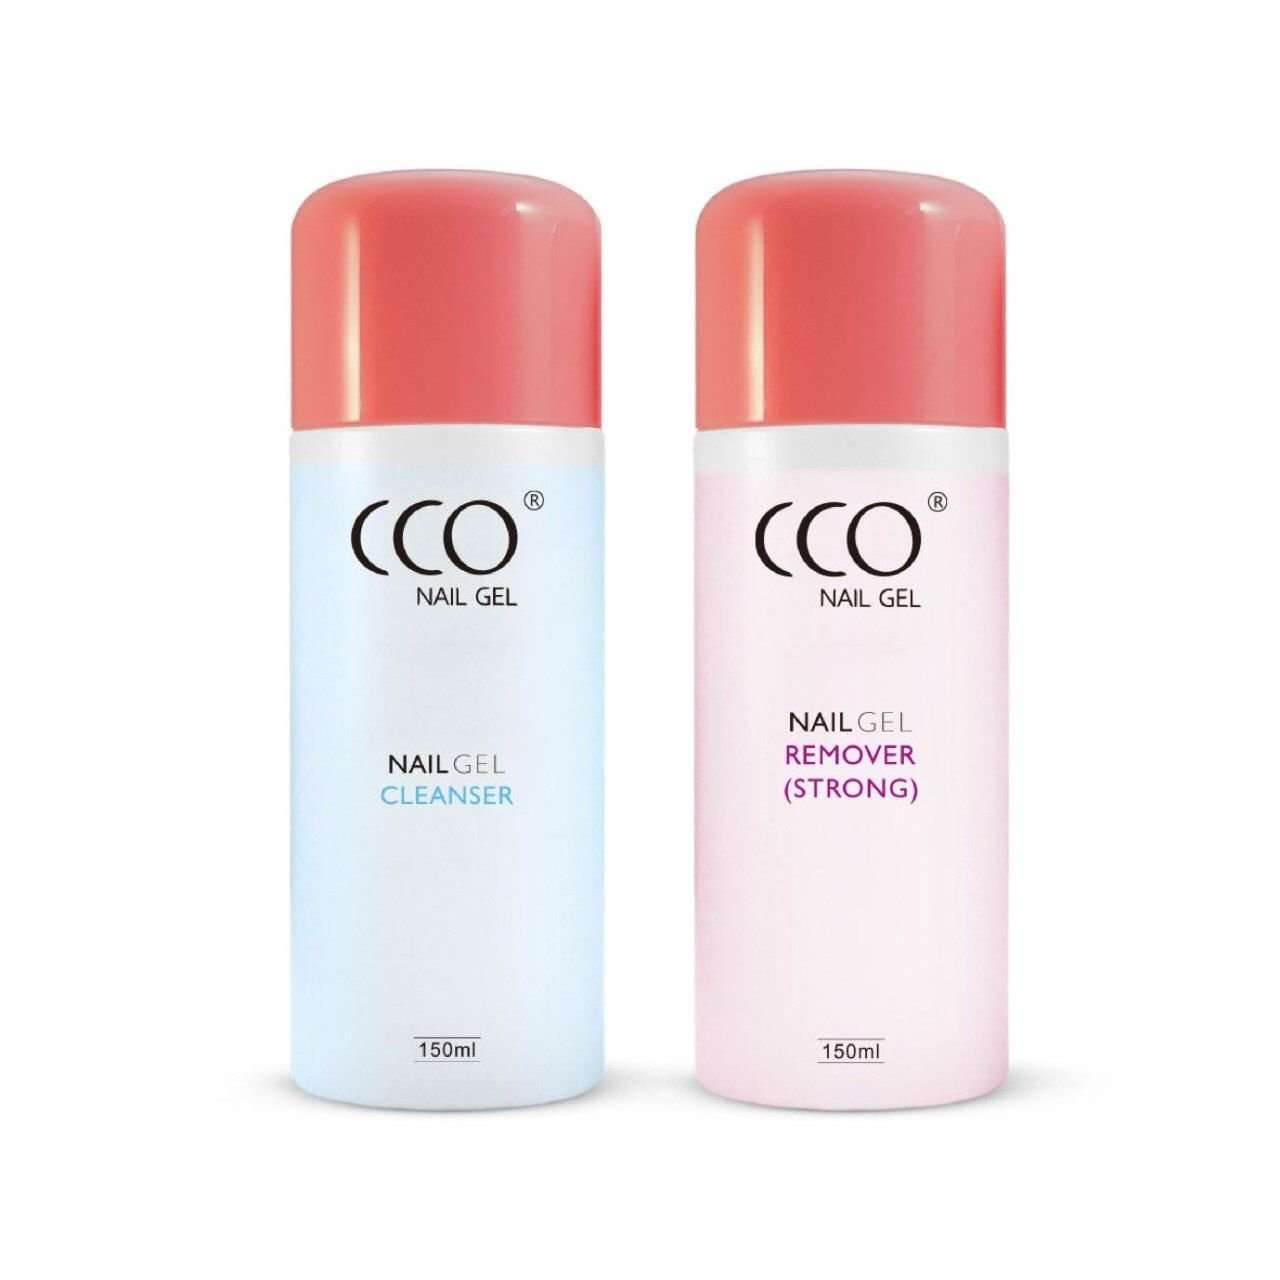 CCO UV LED Nail Gel Remover Cleanser Soak off 150ml 75ml Bottle (Cleanser + Remover (75ml))